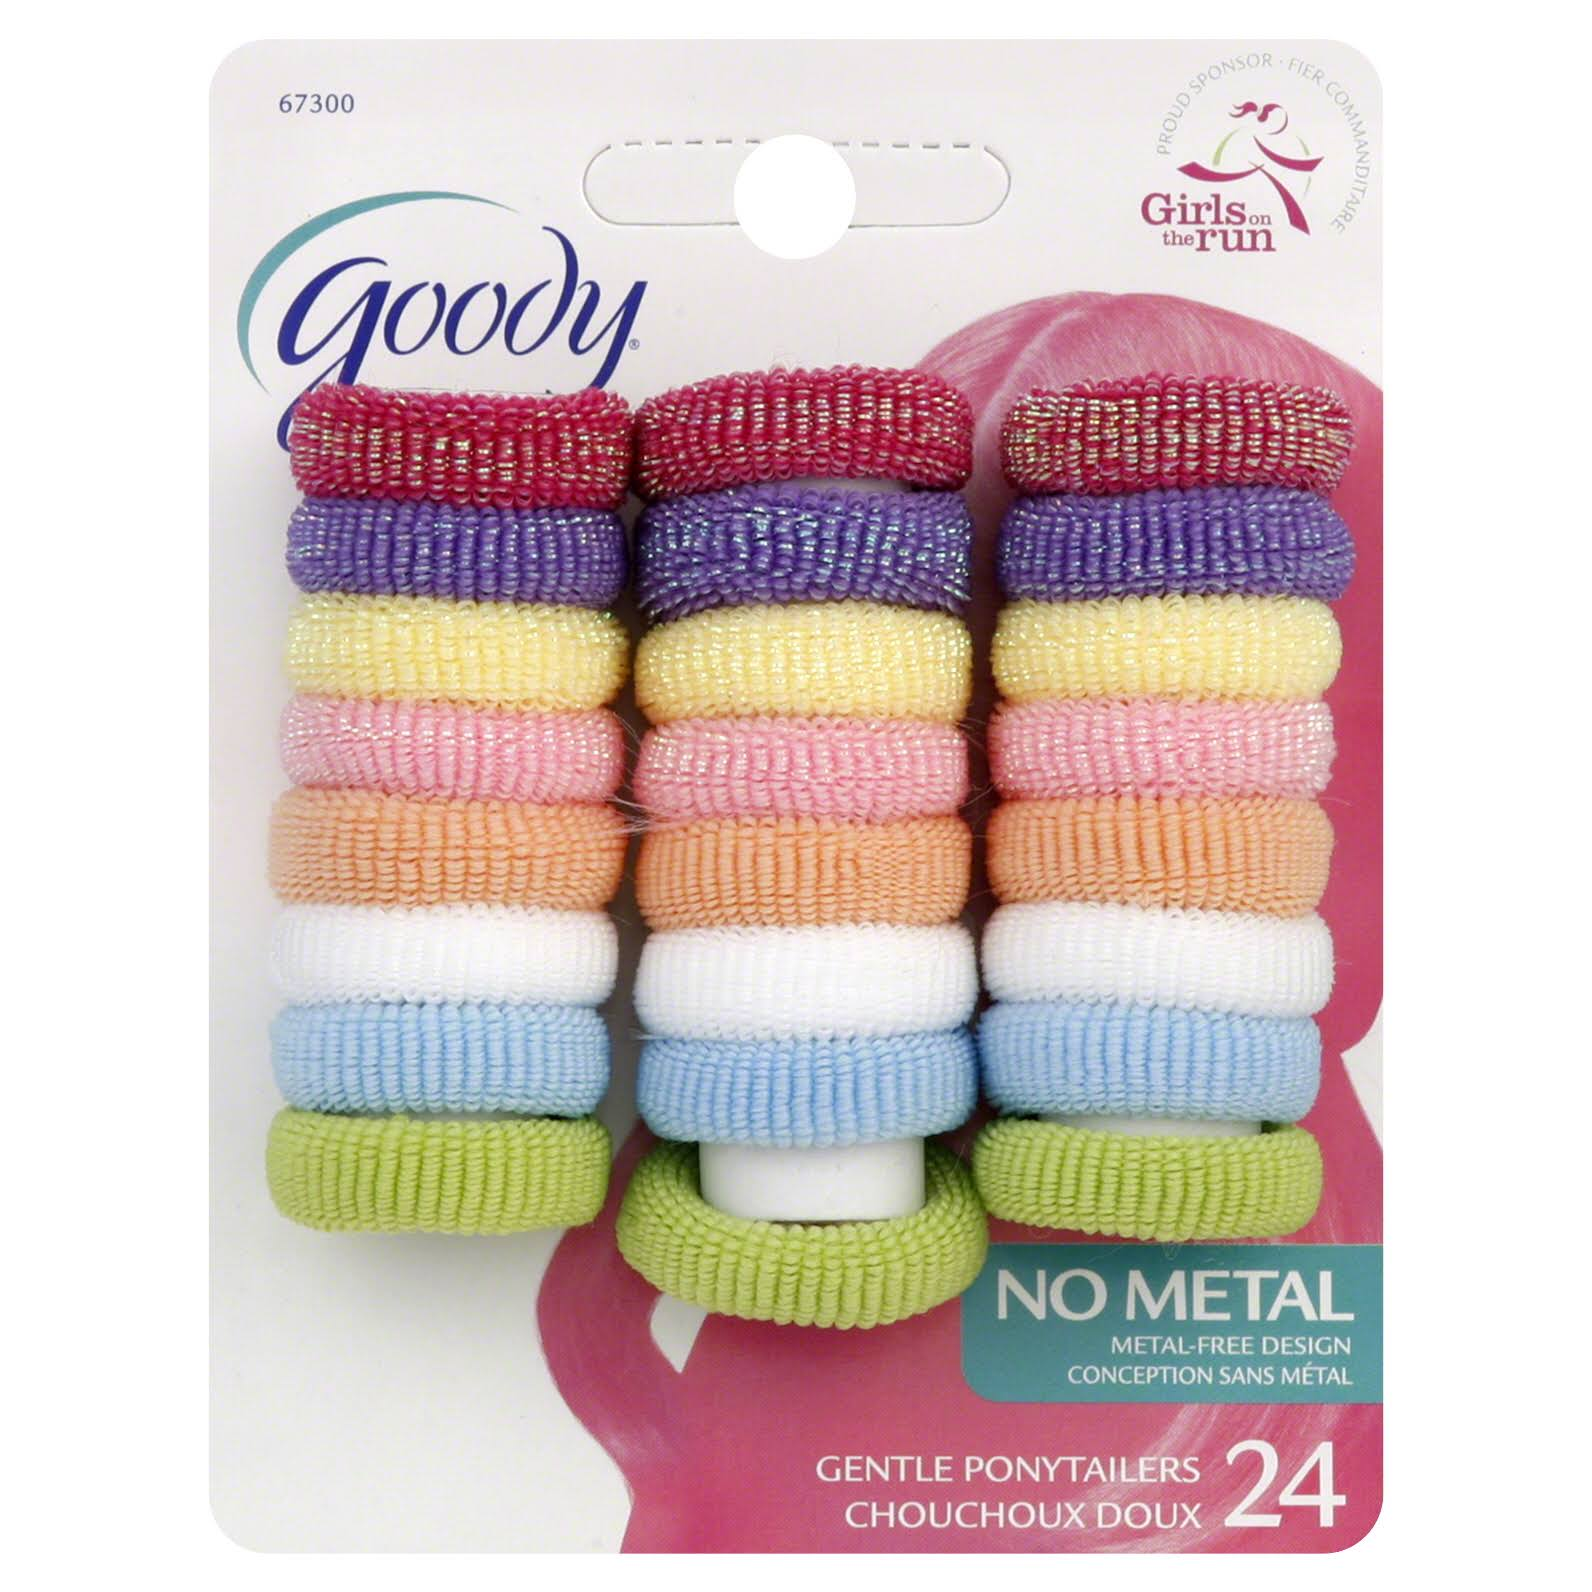 Goody Ouchless Fabric Ponytail Elastics - Assorted Colors, 24pcs